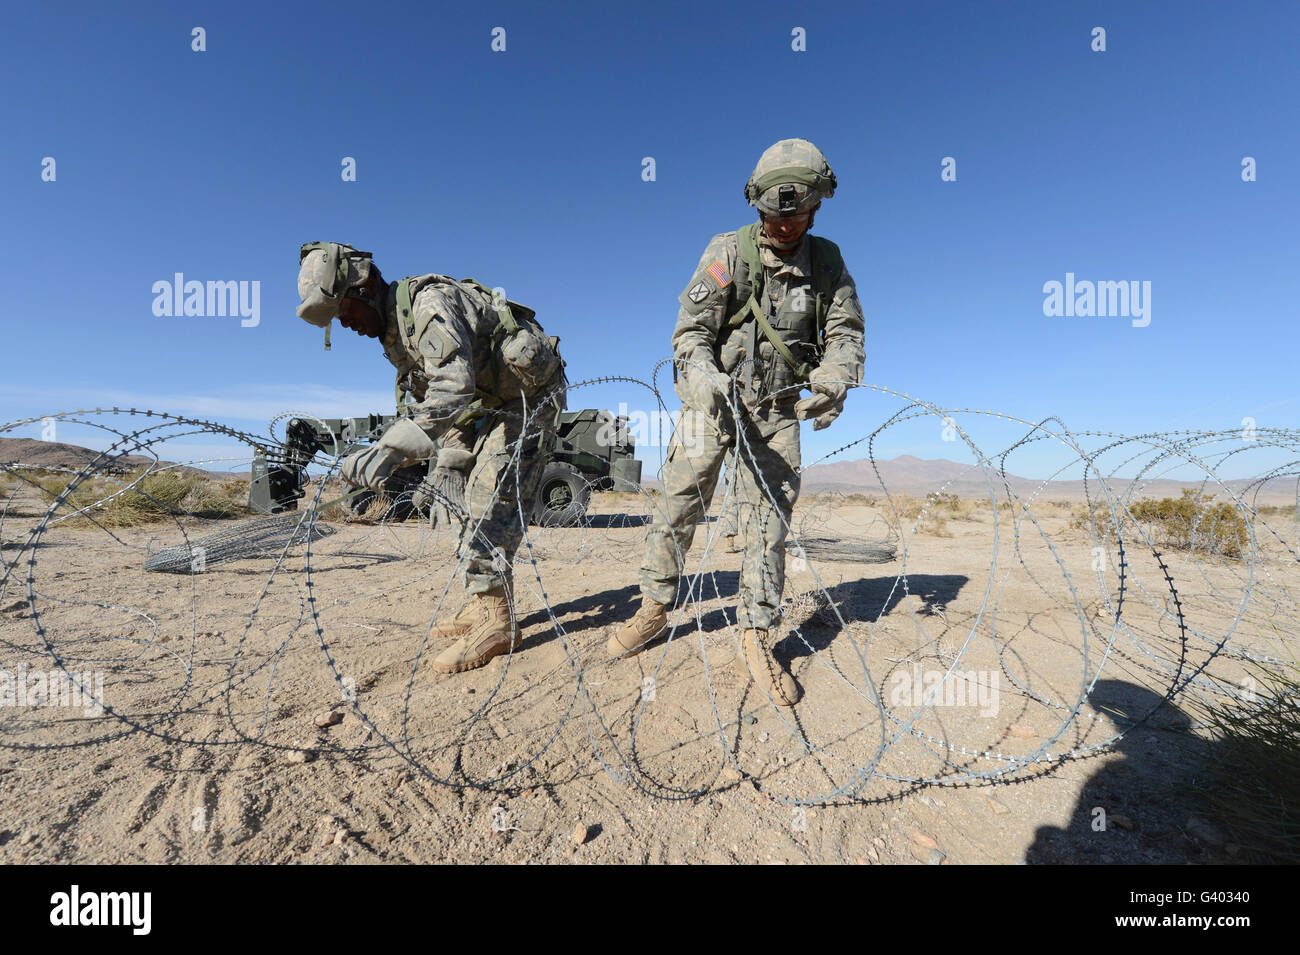 Soldiers uncoil concertina wire at Fort Irwin, California. - Stock Image